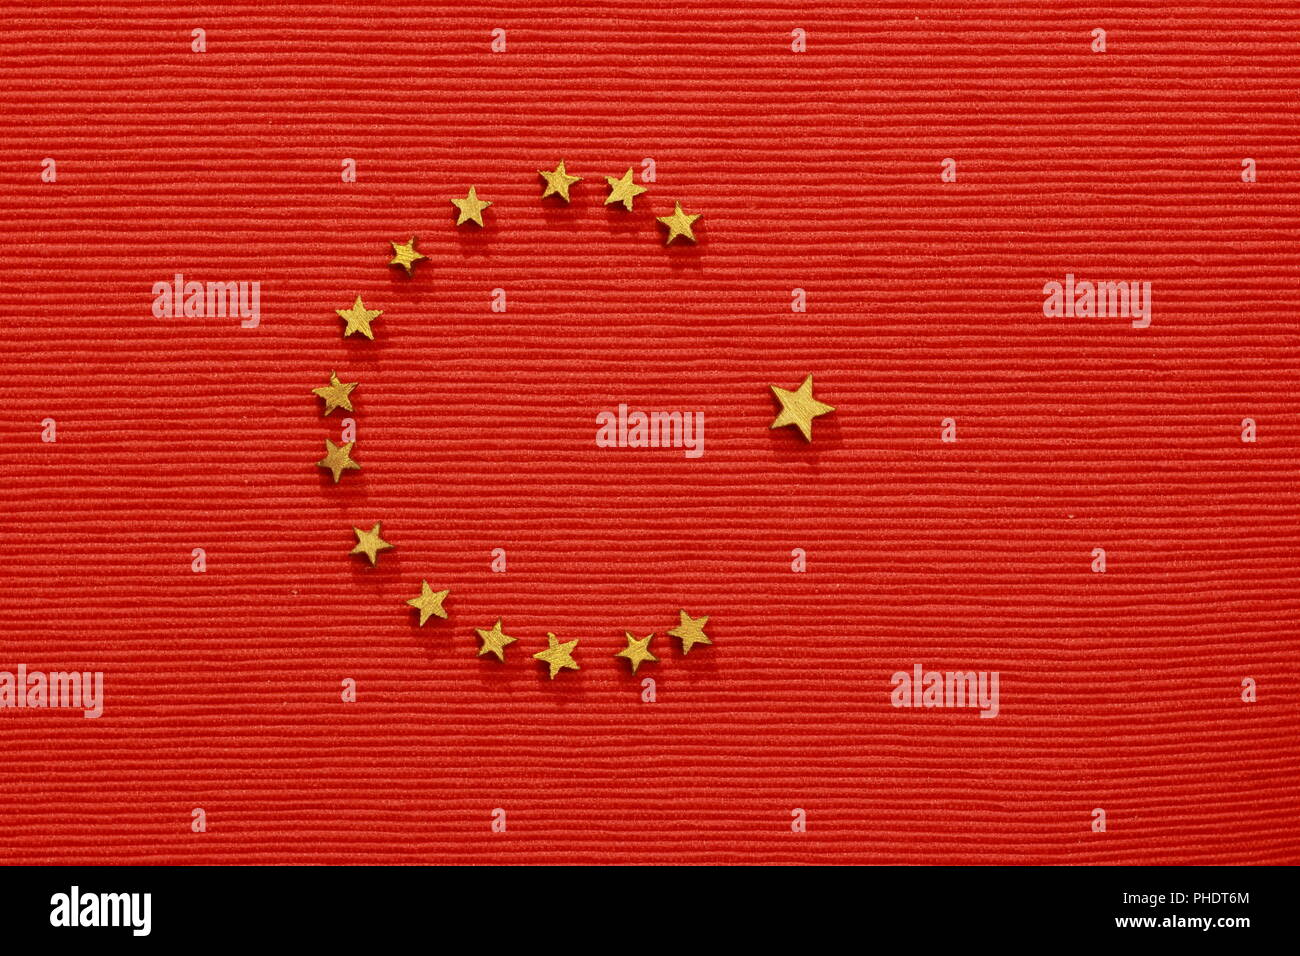 Turkish flag, flat lay - Stock Image